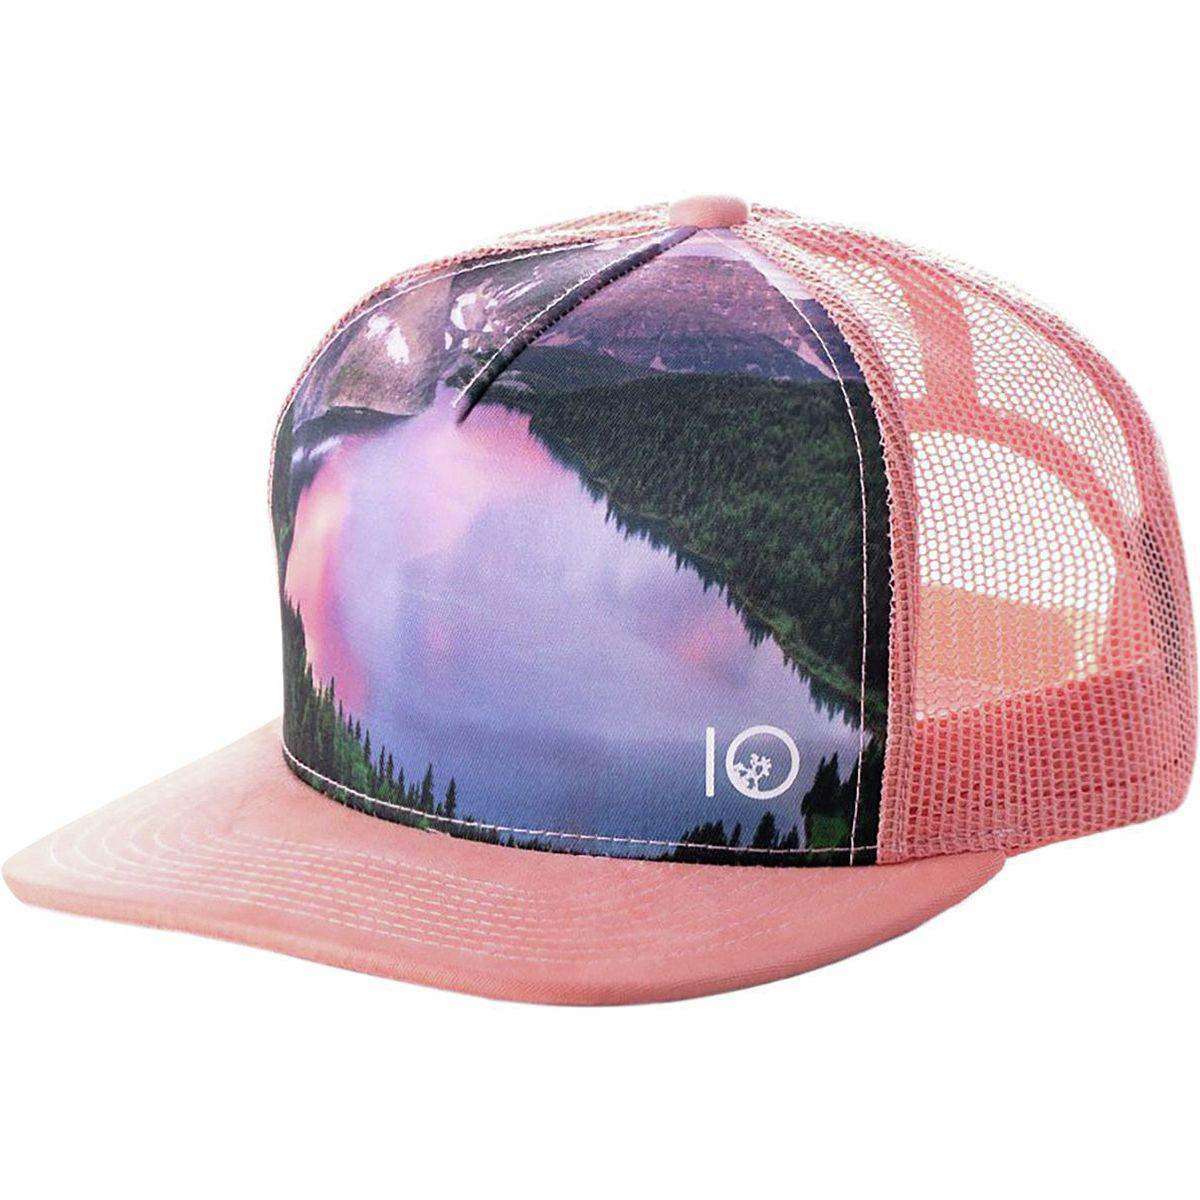 finest selection 14139 9b10e Tentree Outlook Trucker Hat in Pink - Lyst